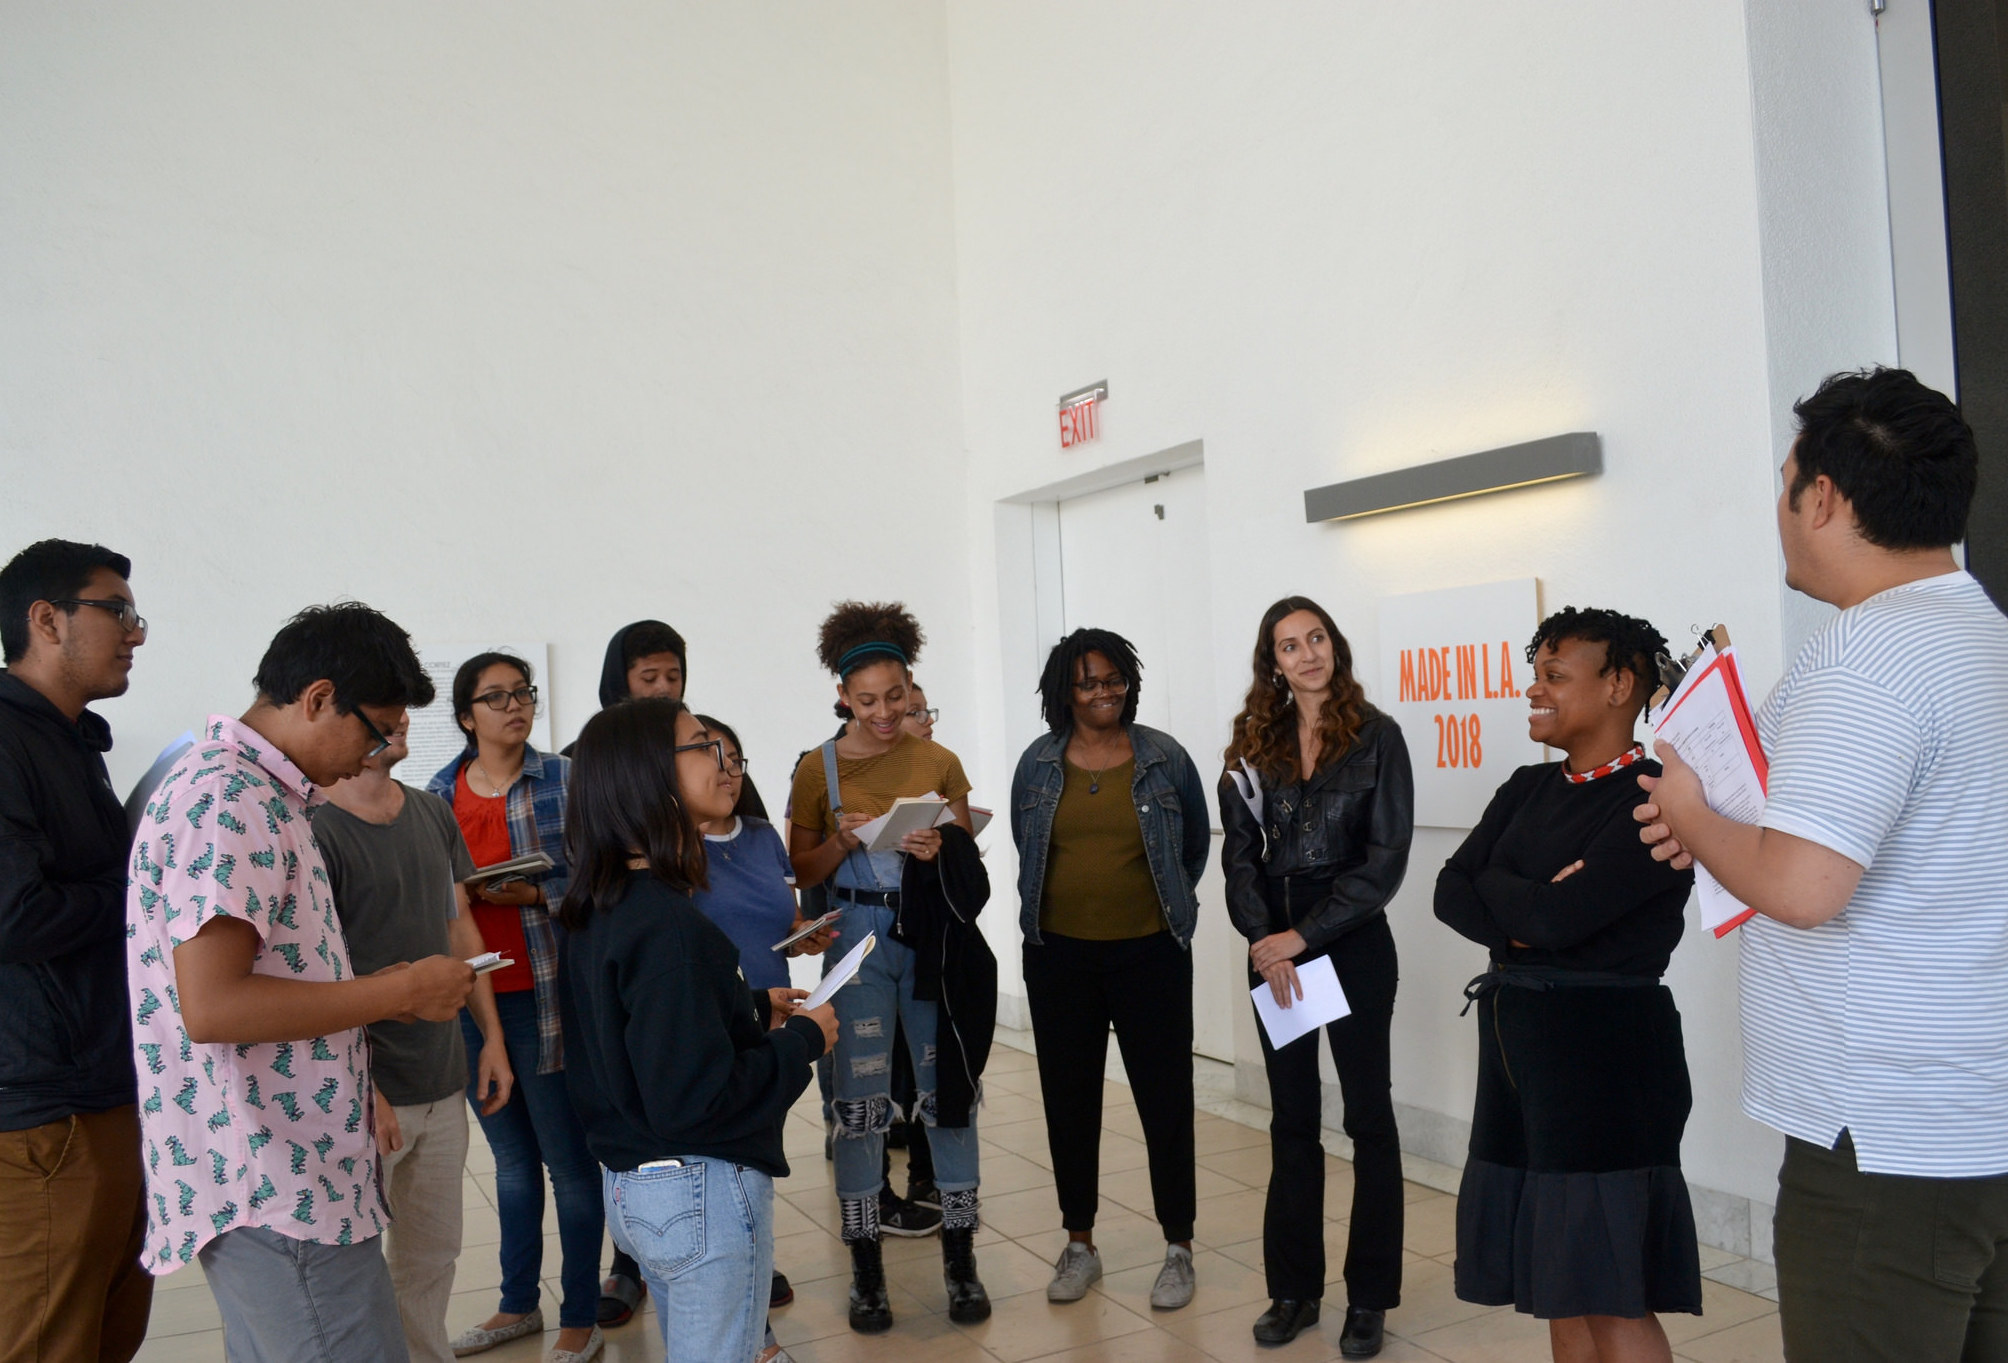 Students talking with Erin Christovale, Made in L.A. cocurator